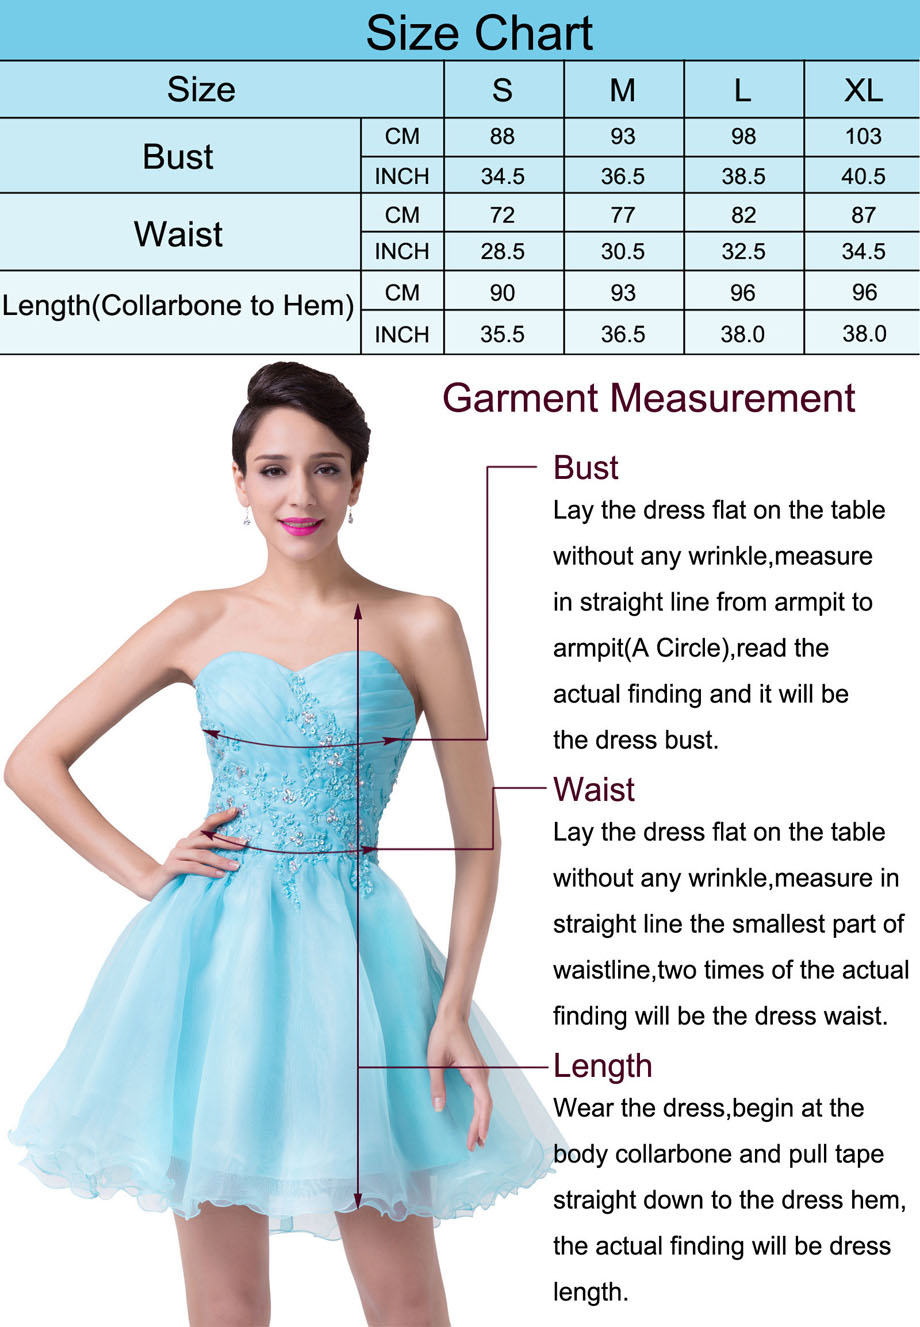 37406ed9113e4 Belle Poque Rockabilly Womens Summer Style Dresses 2017 robe Pin Up Retro  Vintage 50s Audrey Hepburn Swing Print Casual Clothing-in Dresses from ...